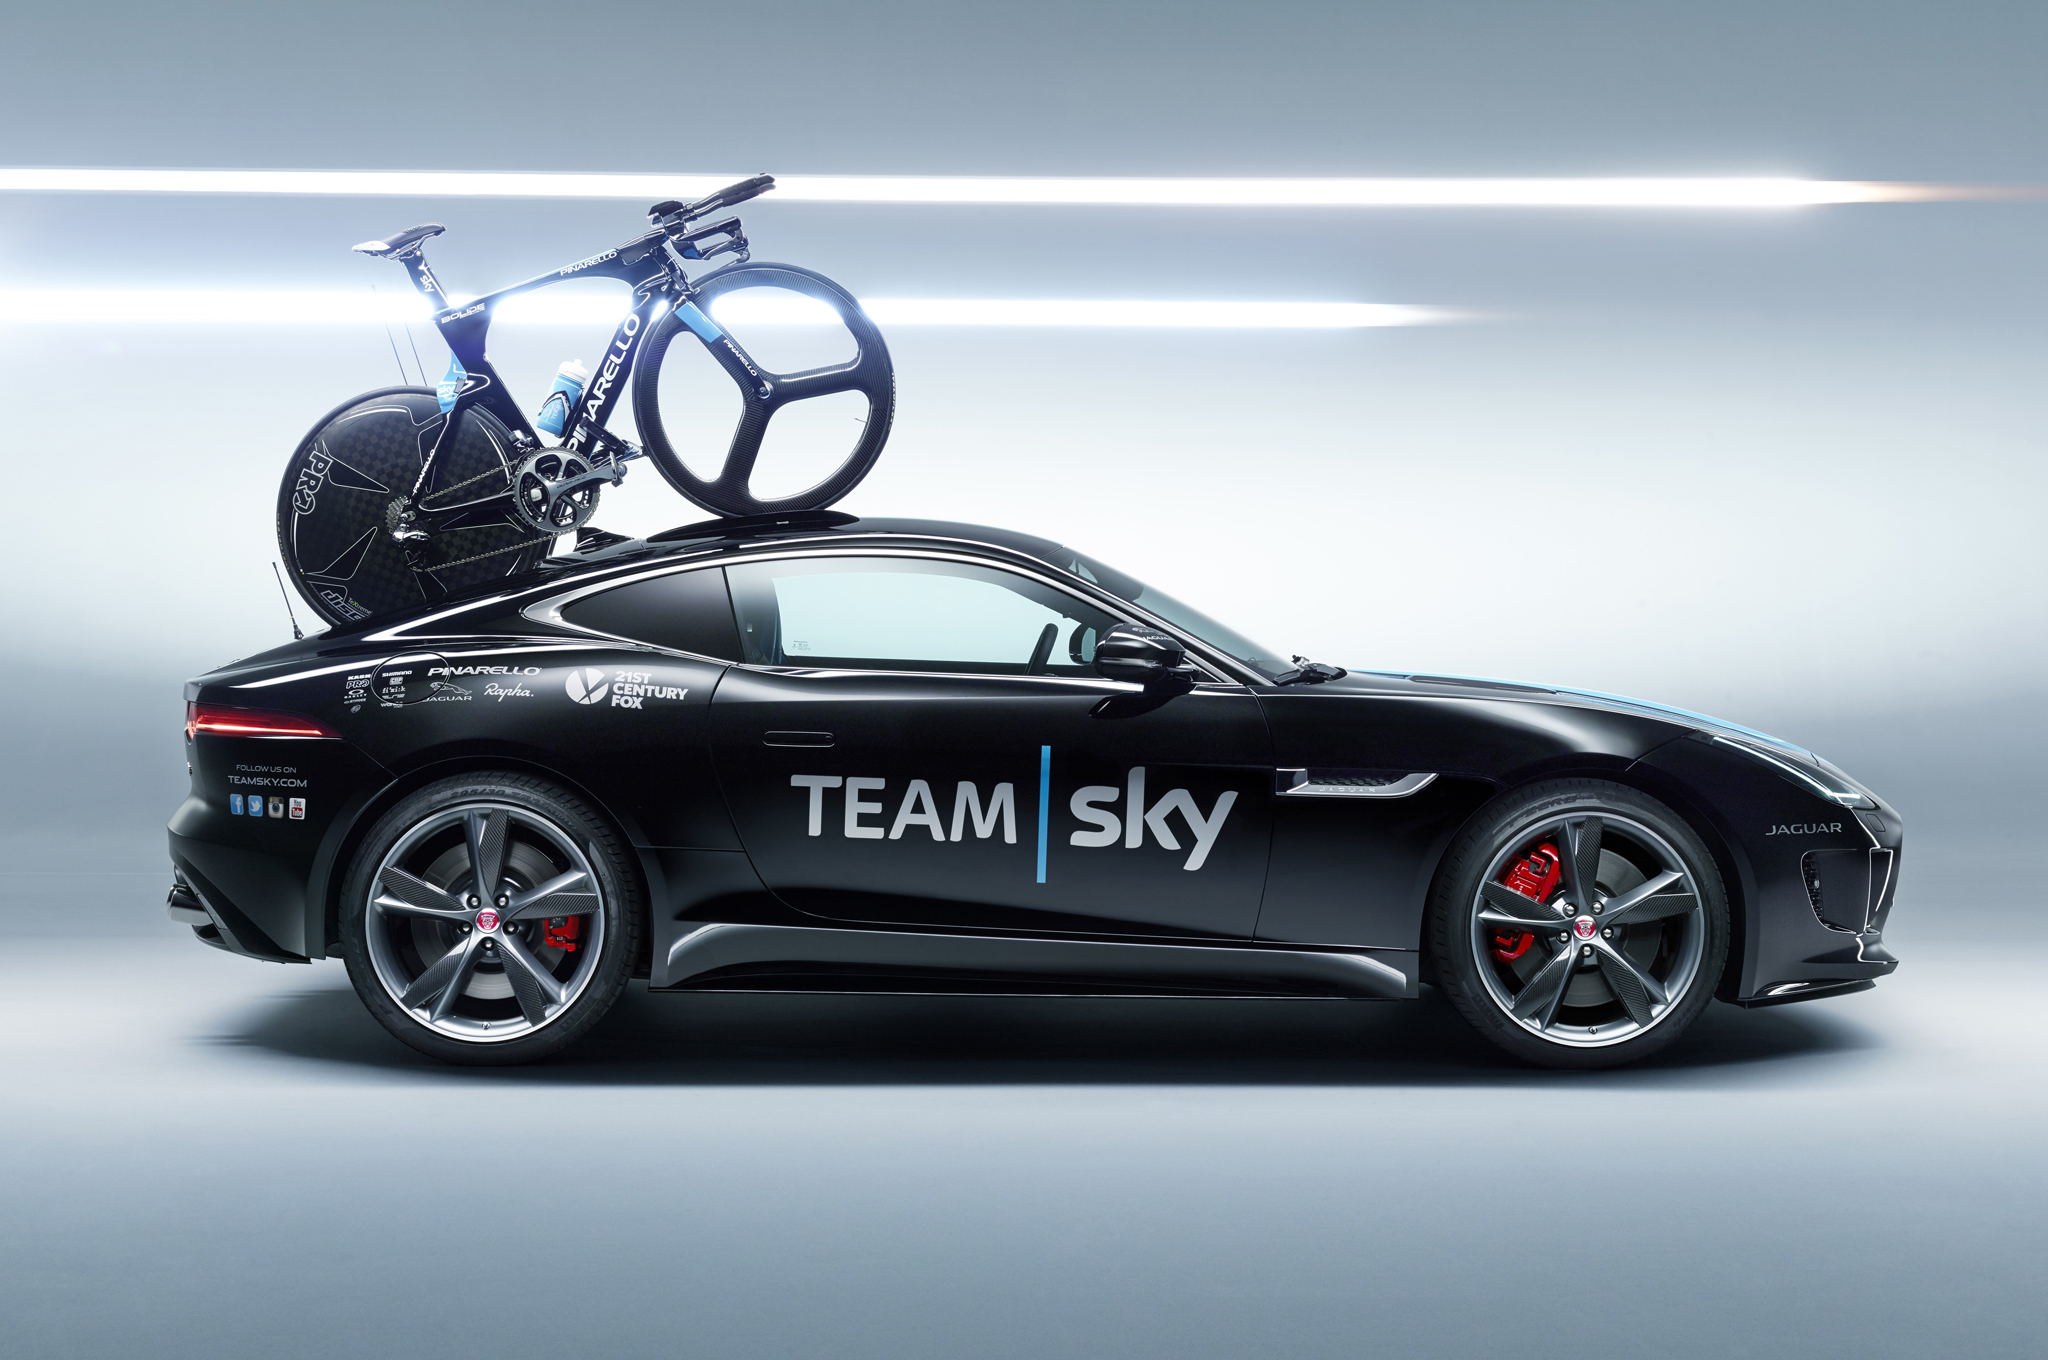 2015-Jaguar-F-Type-Coupe-R-for-Sky-Team-side-view.jpg